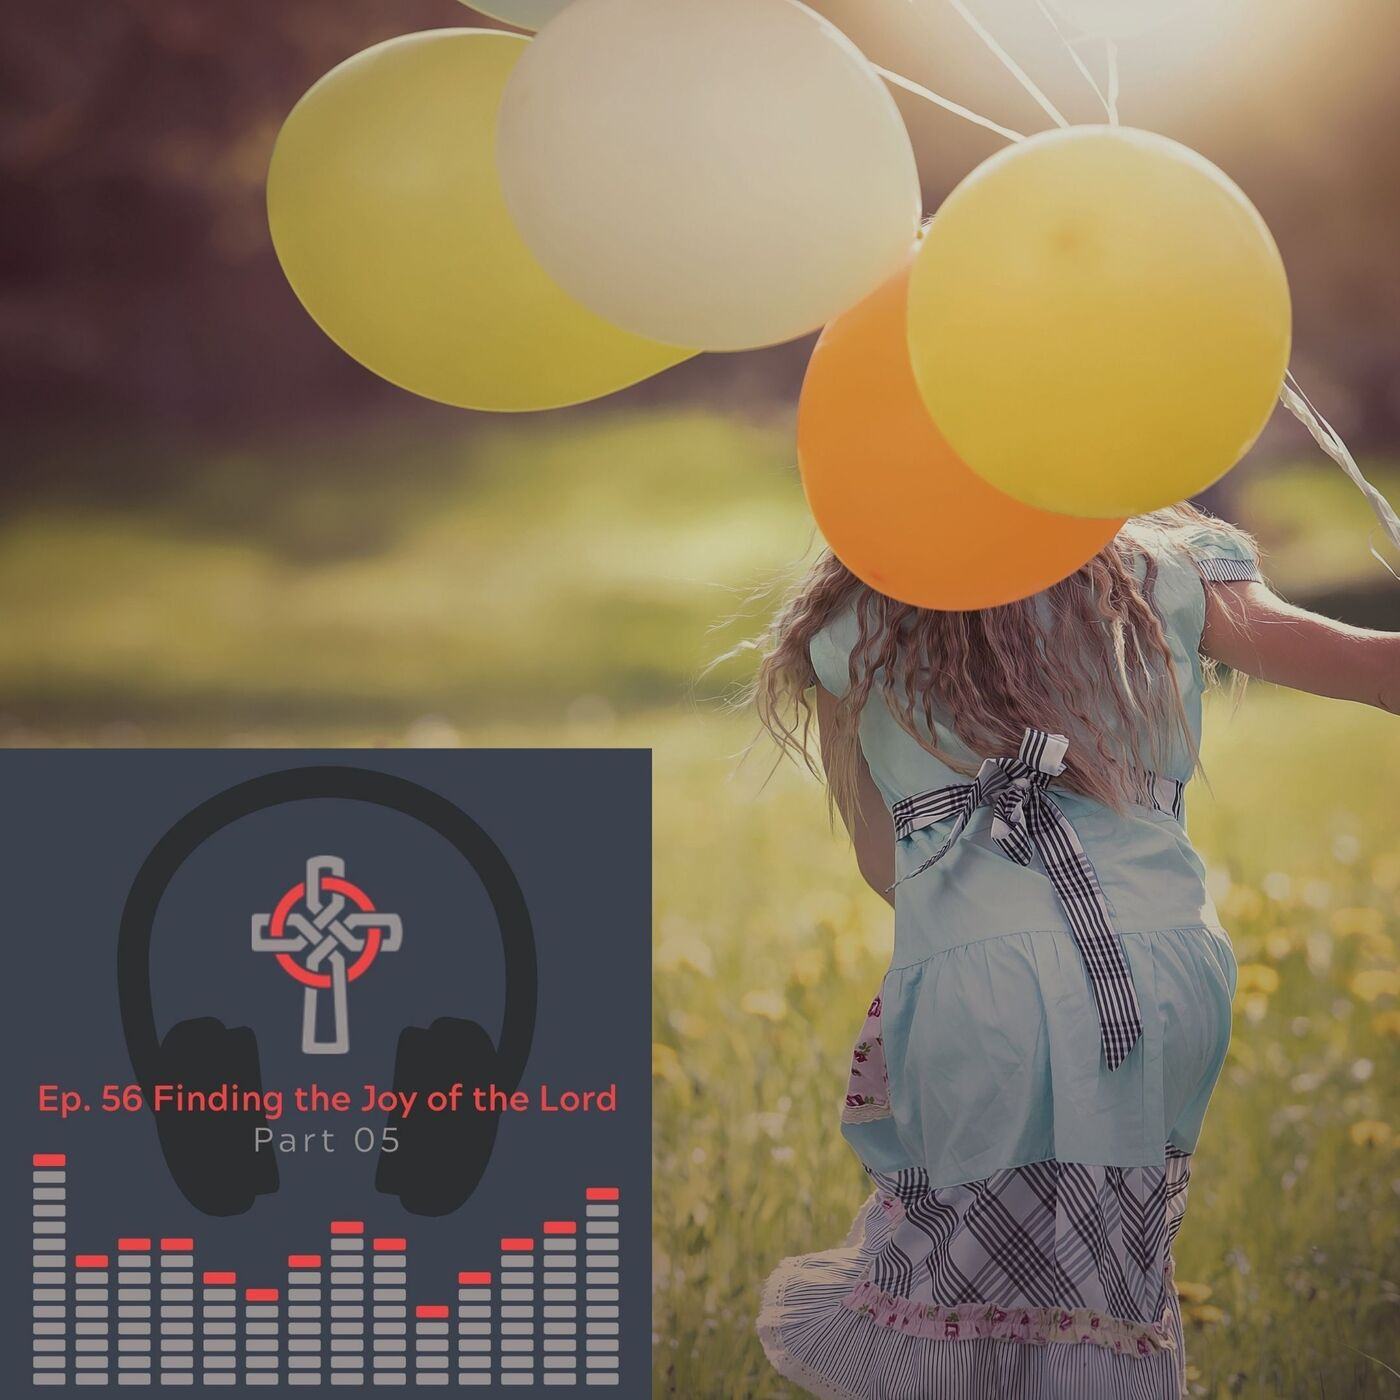 Episode 56 - Finding the Joy of the Lord in a Stress-filled World Part 05